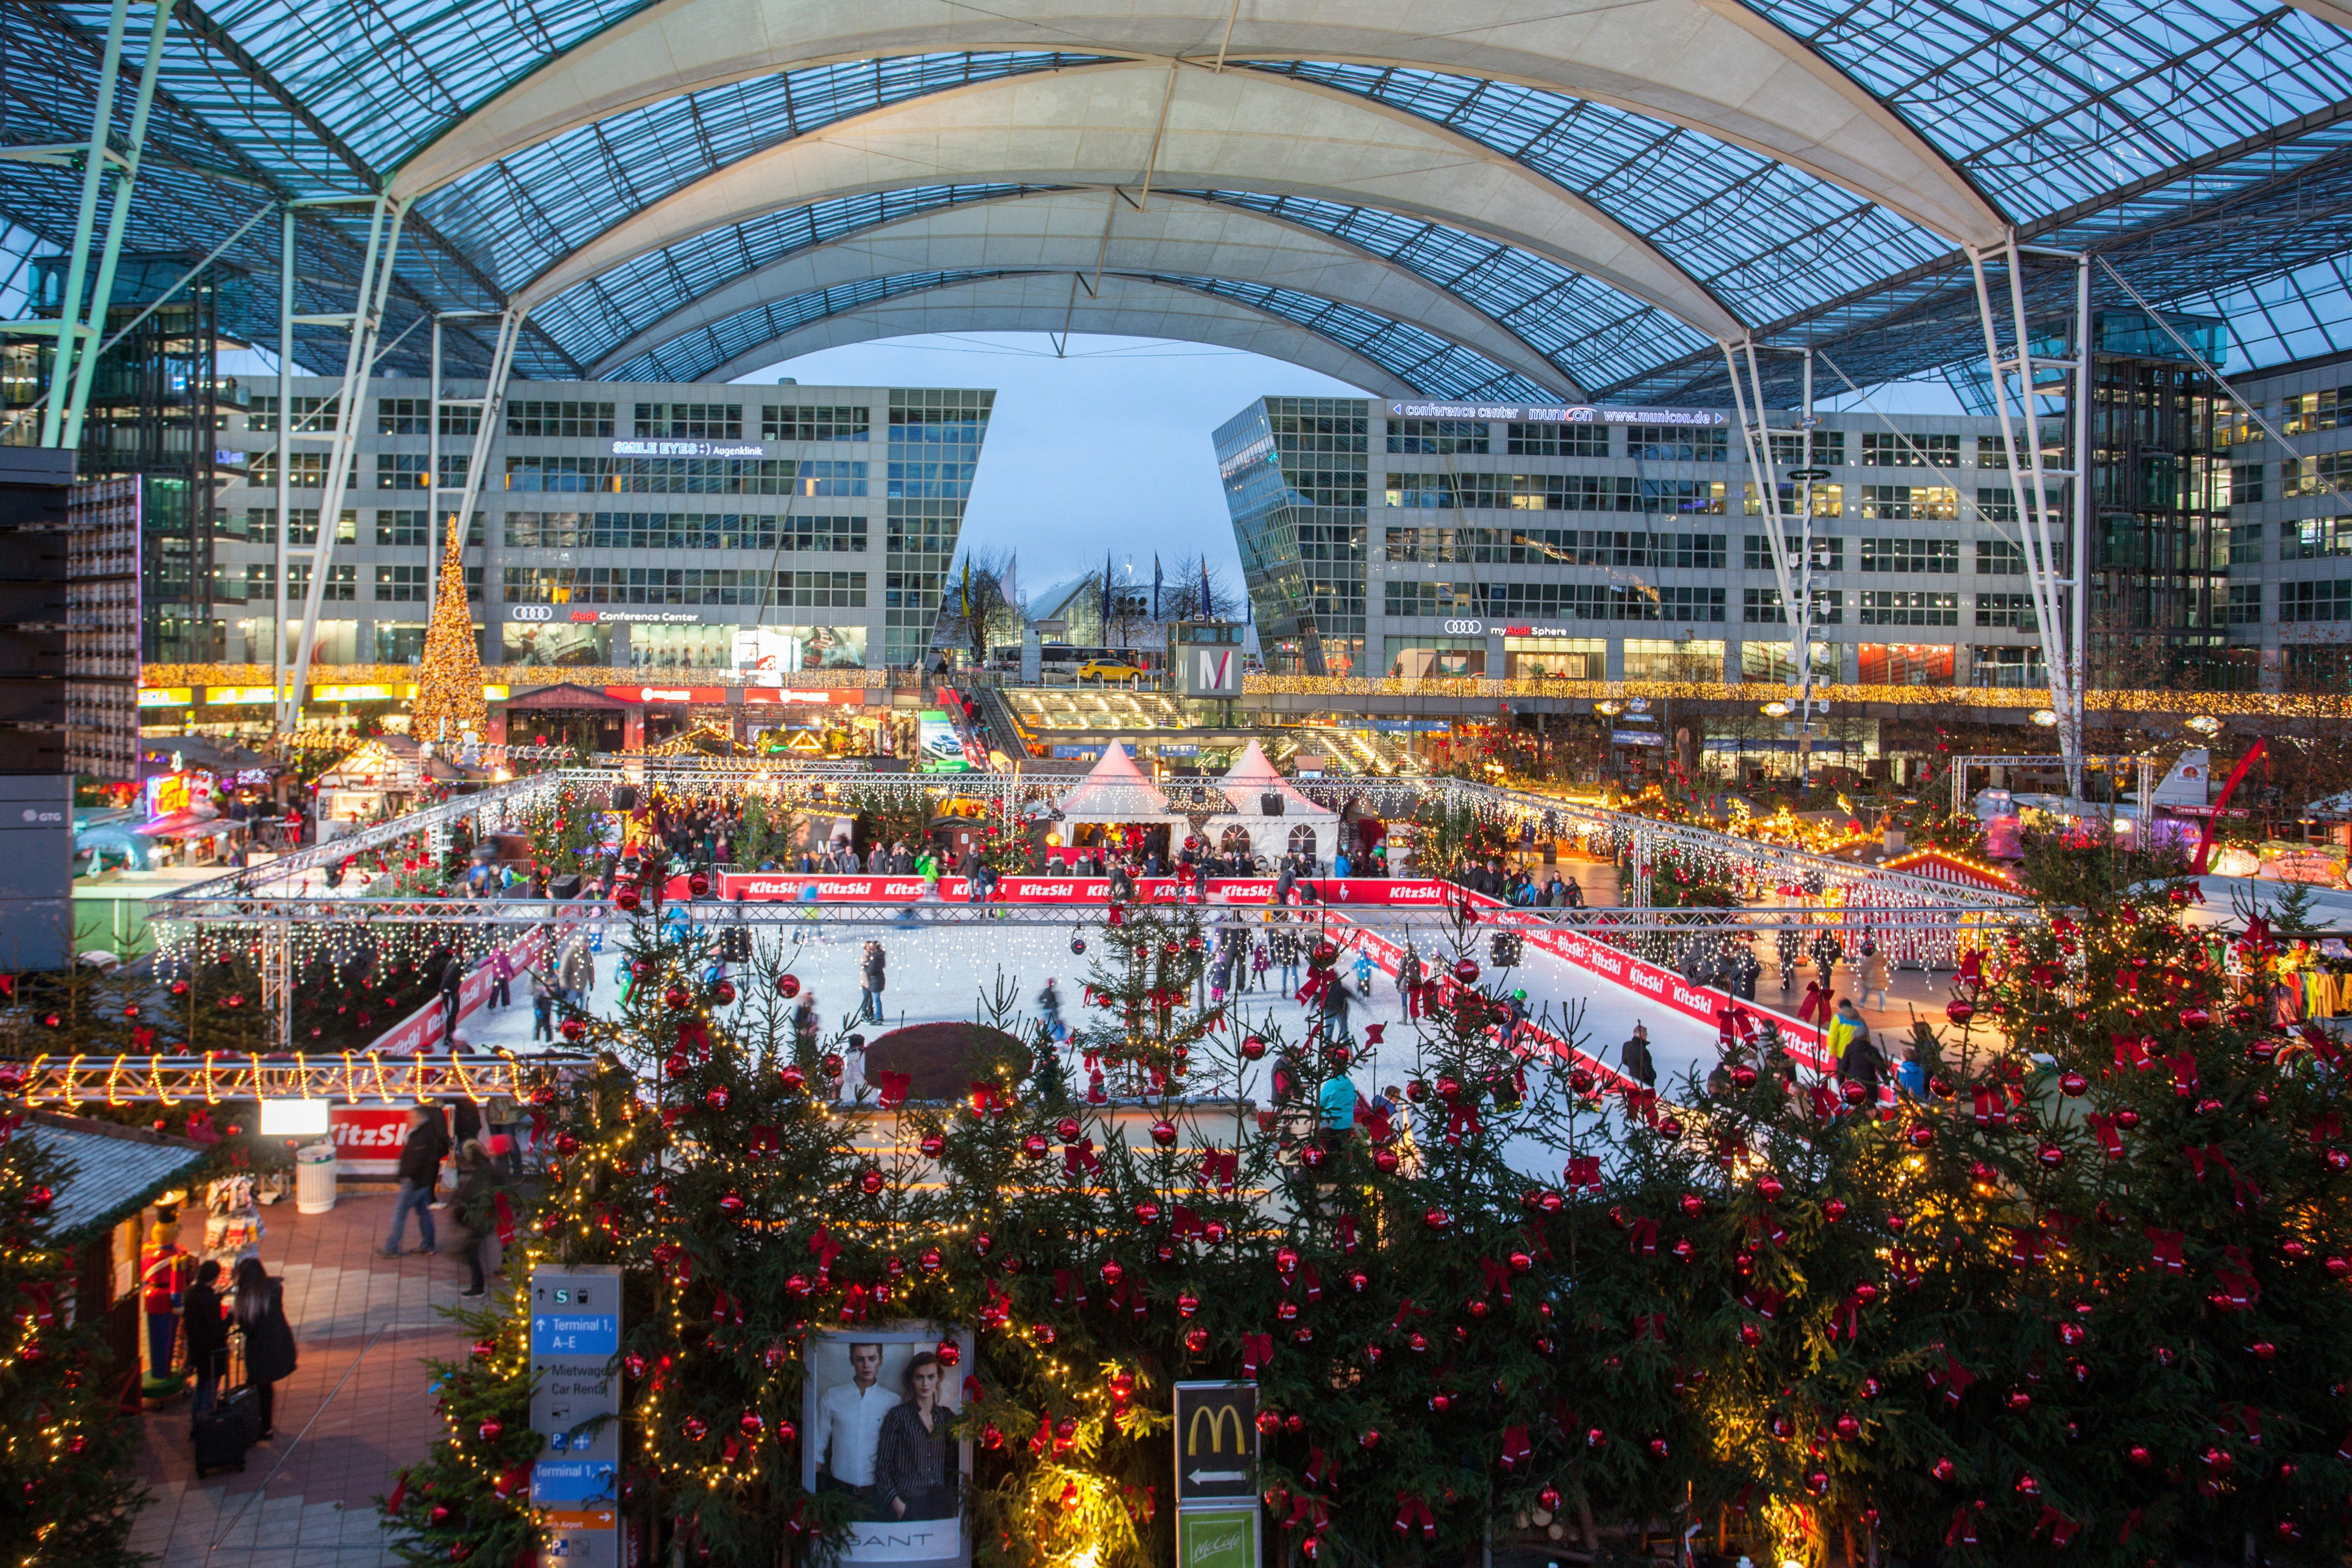 Munich Airport Has A Christmas Market With Two Ice Rinks